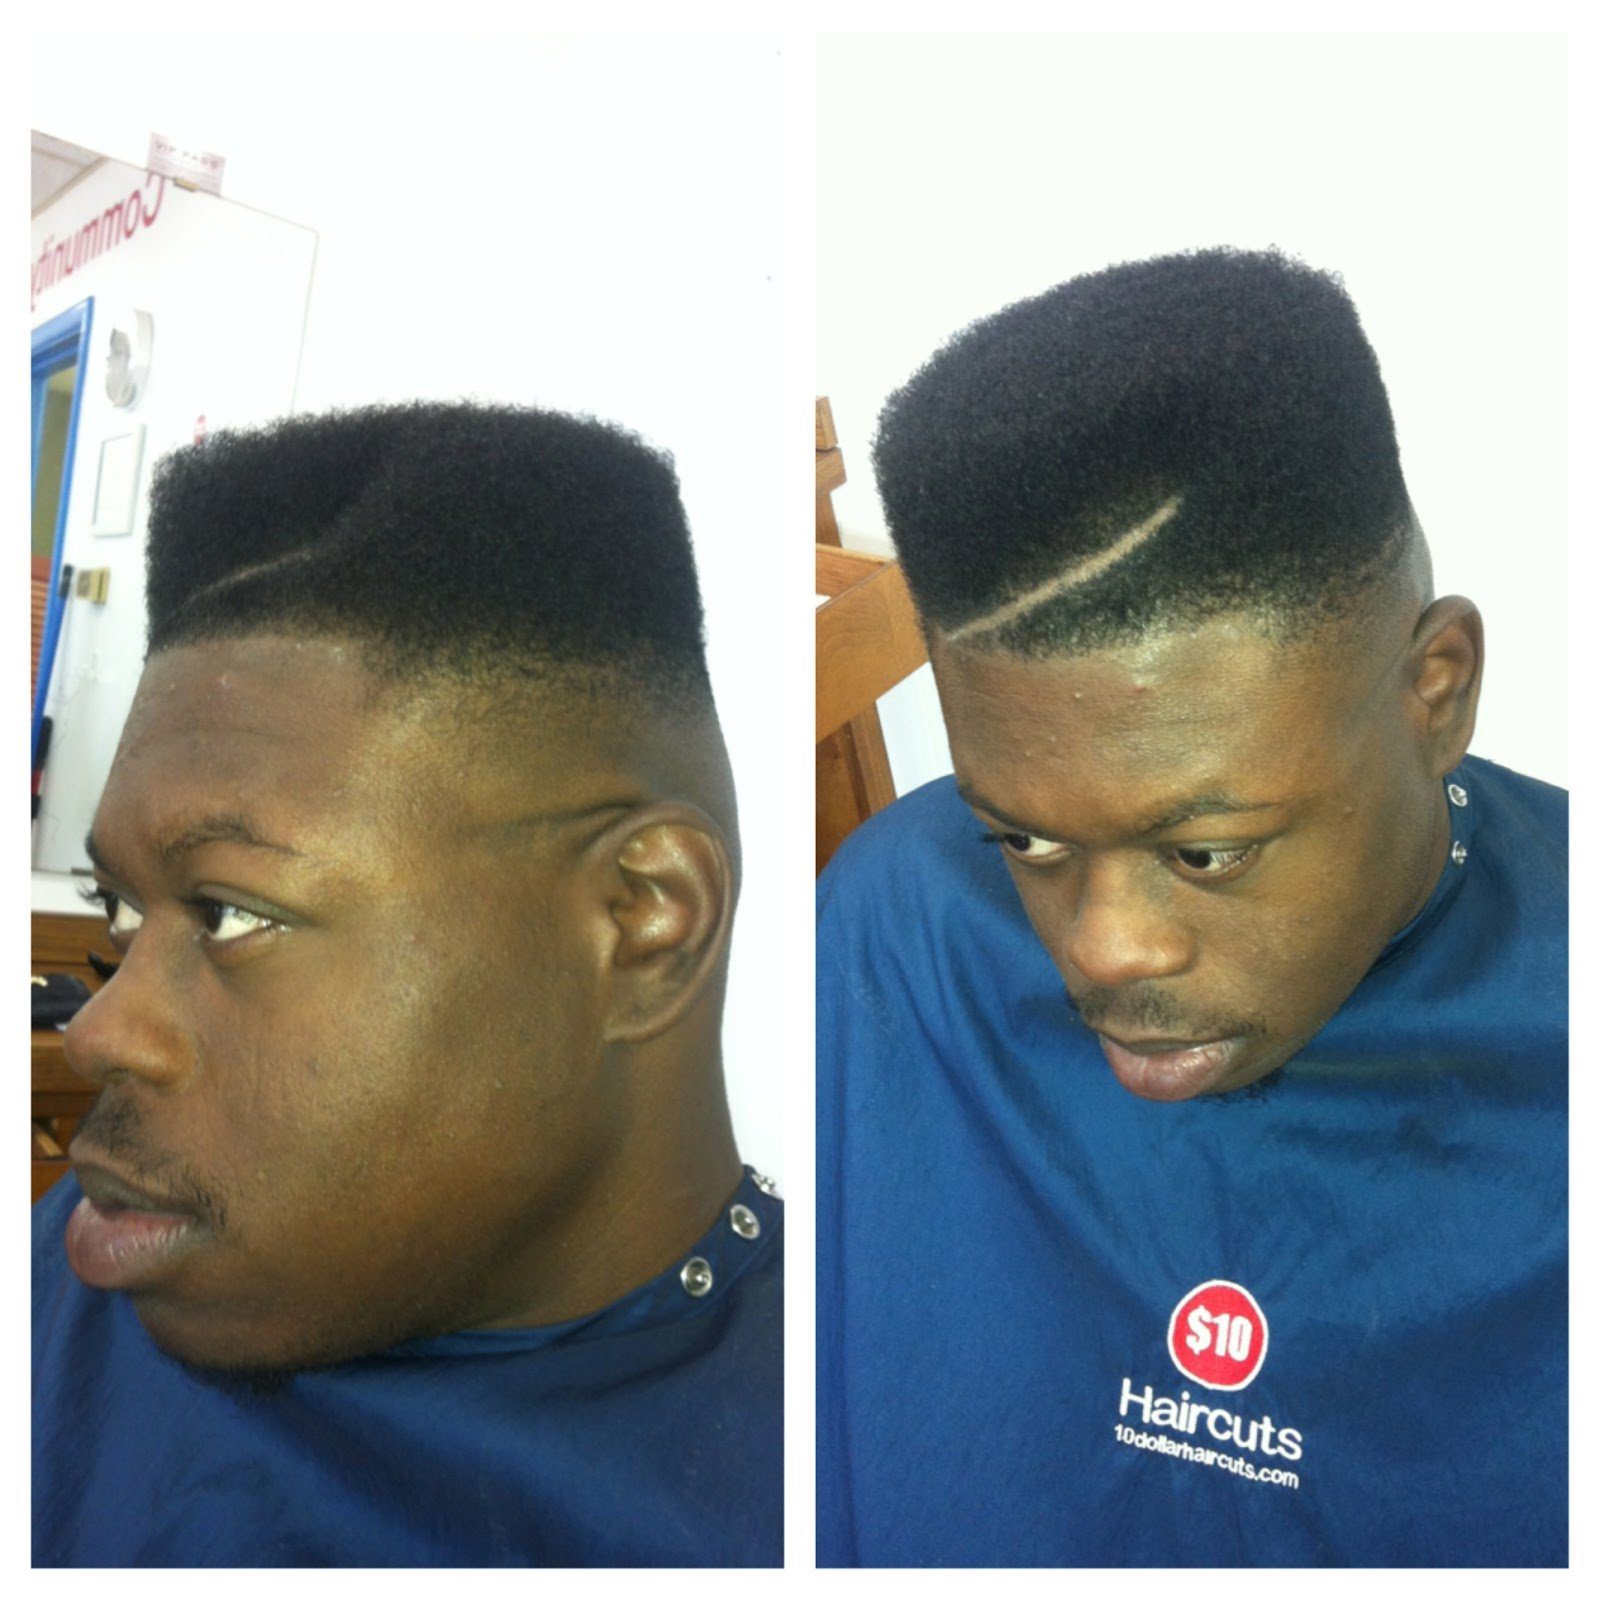 The Best 10 Dollar Haircuts 76011 Oh Yeah We Can Cut And Style Pictures Original 1024 x 768